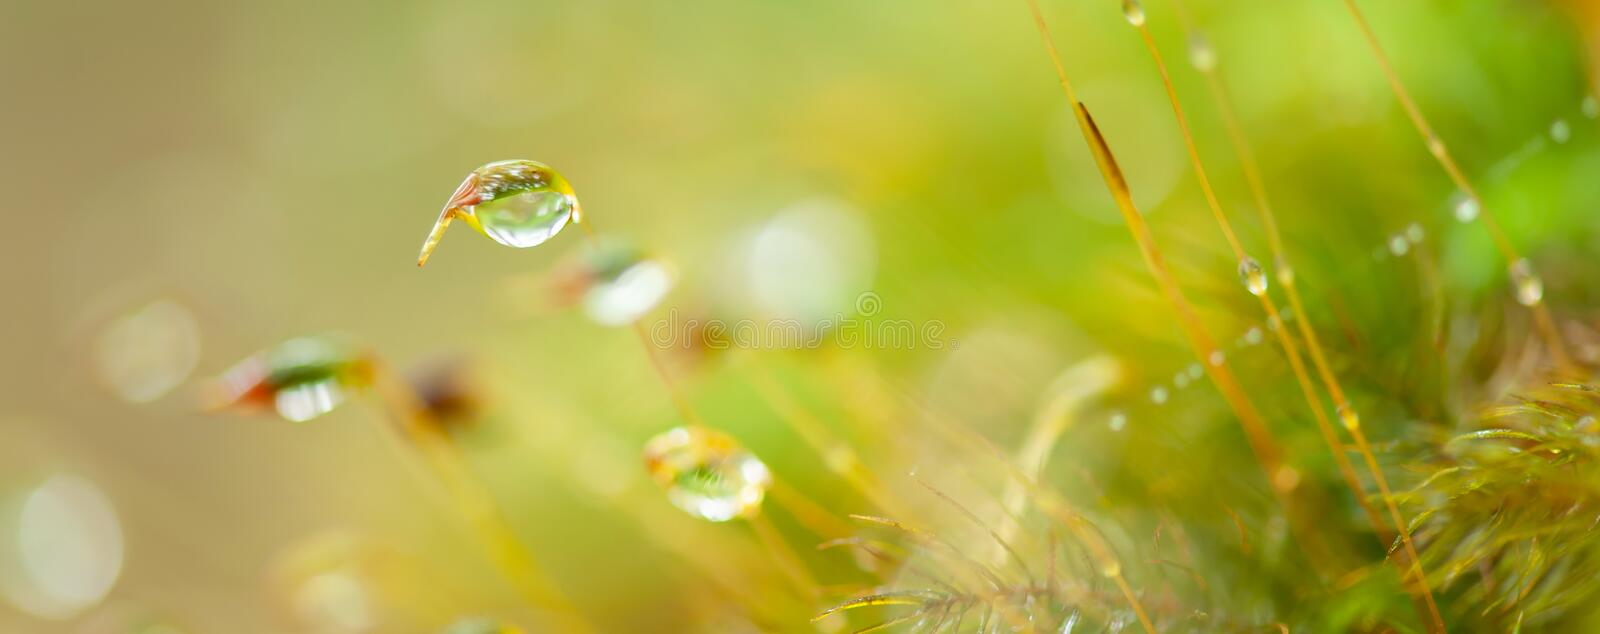 Pure water drops in moss and tropical plants, bokeh and blurred natural green backgrounds. Transparent and bright rain droplet royalty free stock photography